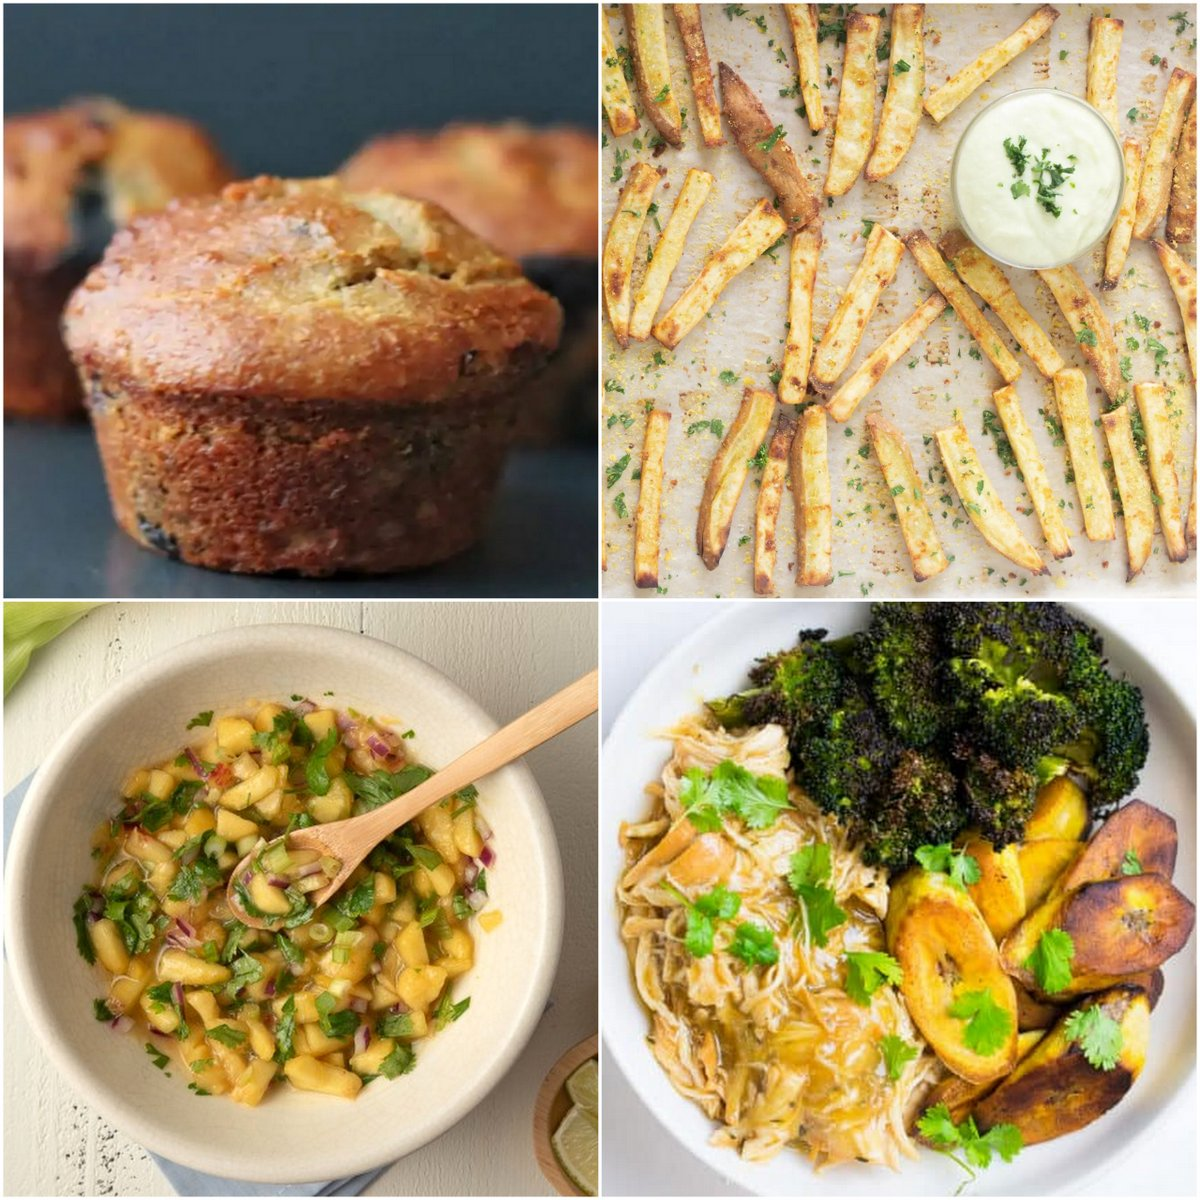 """Paleo AIP Recipe Roundtable #382   Phoenix Helix - *Featured Recipes: Banana and Blueberry Muffins, """"Cheesy"""" Truffle Fries with Aioli Avocado Dip, Peach Salsa, and Instant Pot Orange Chicken."""